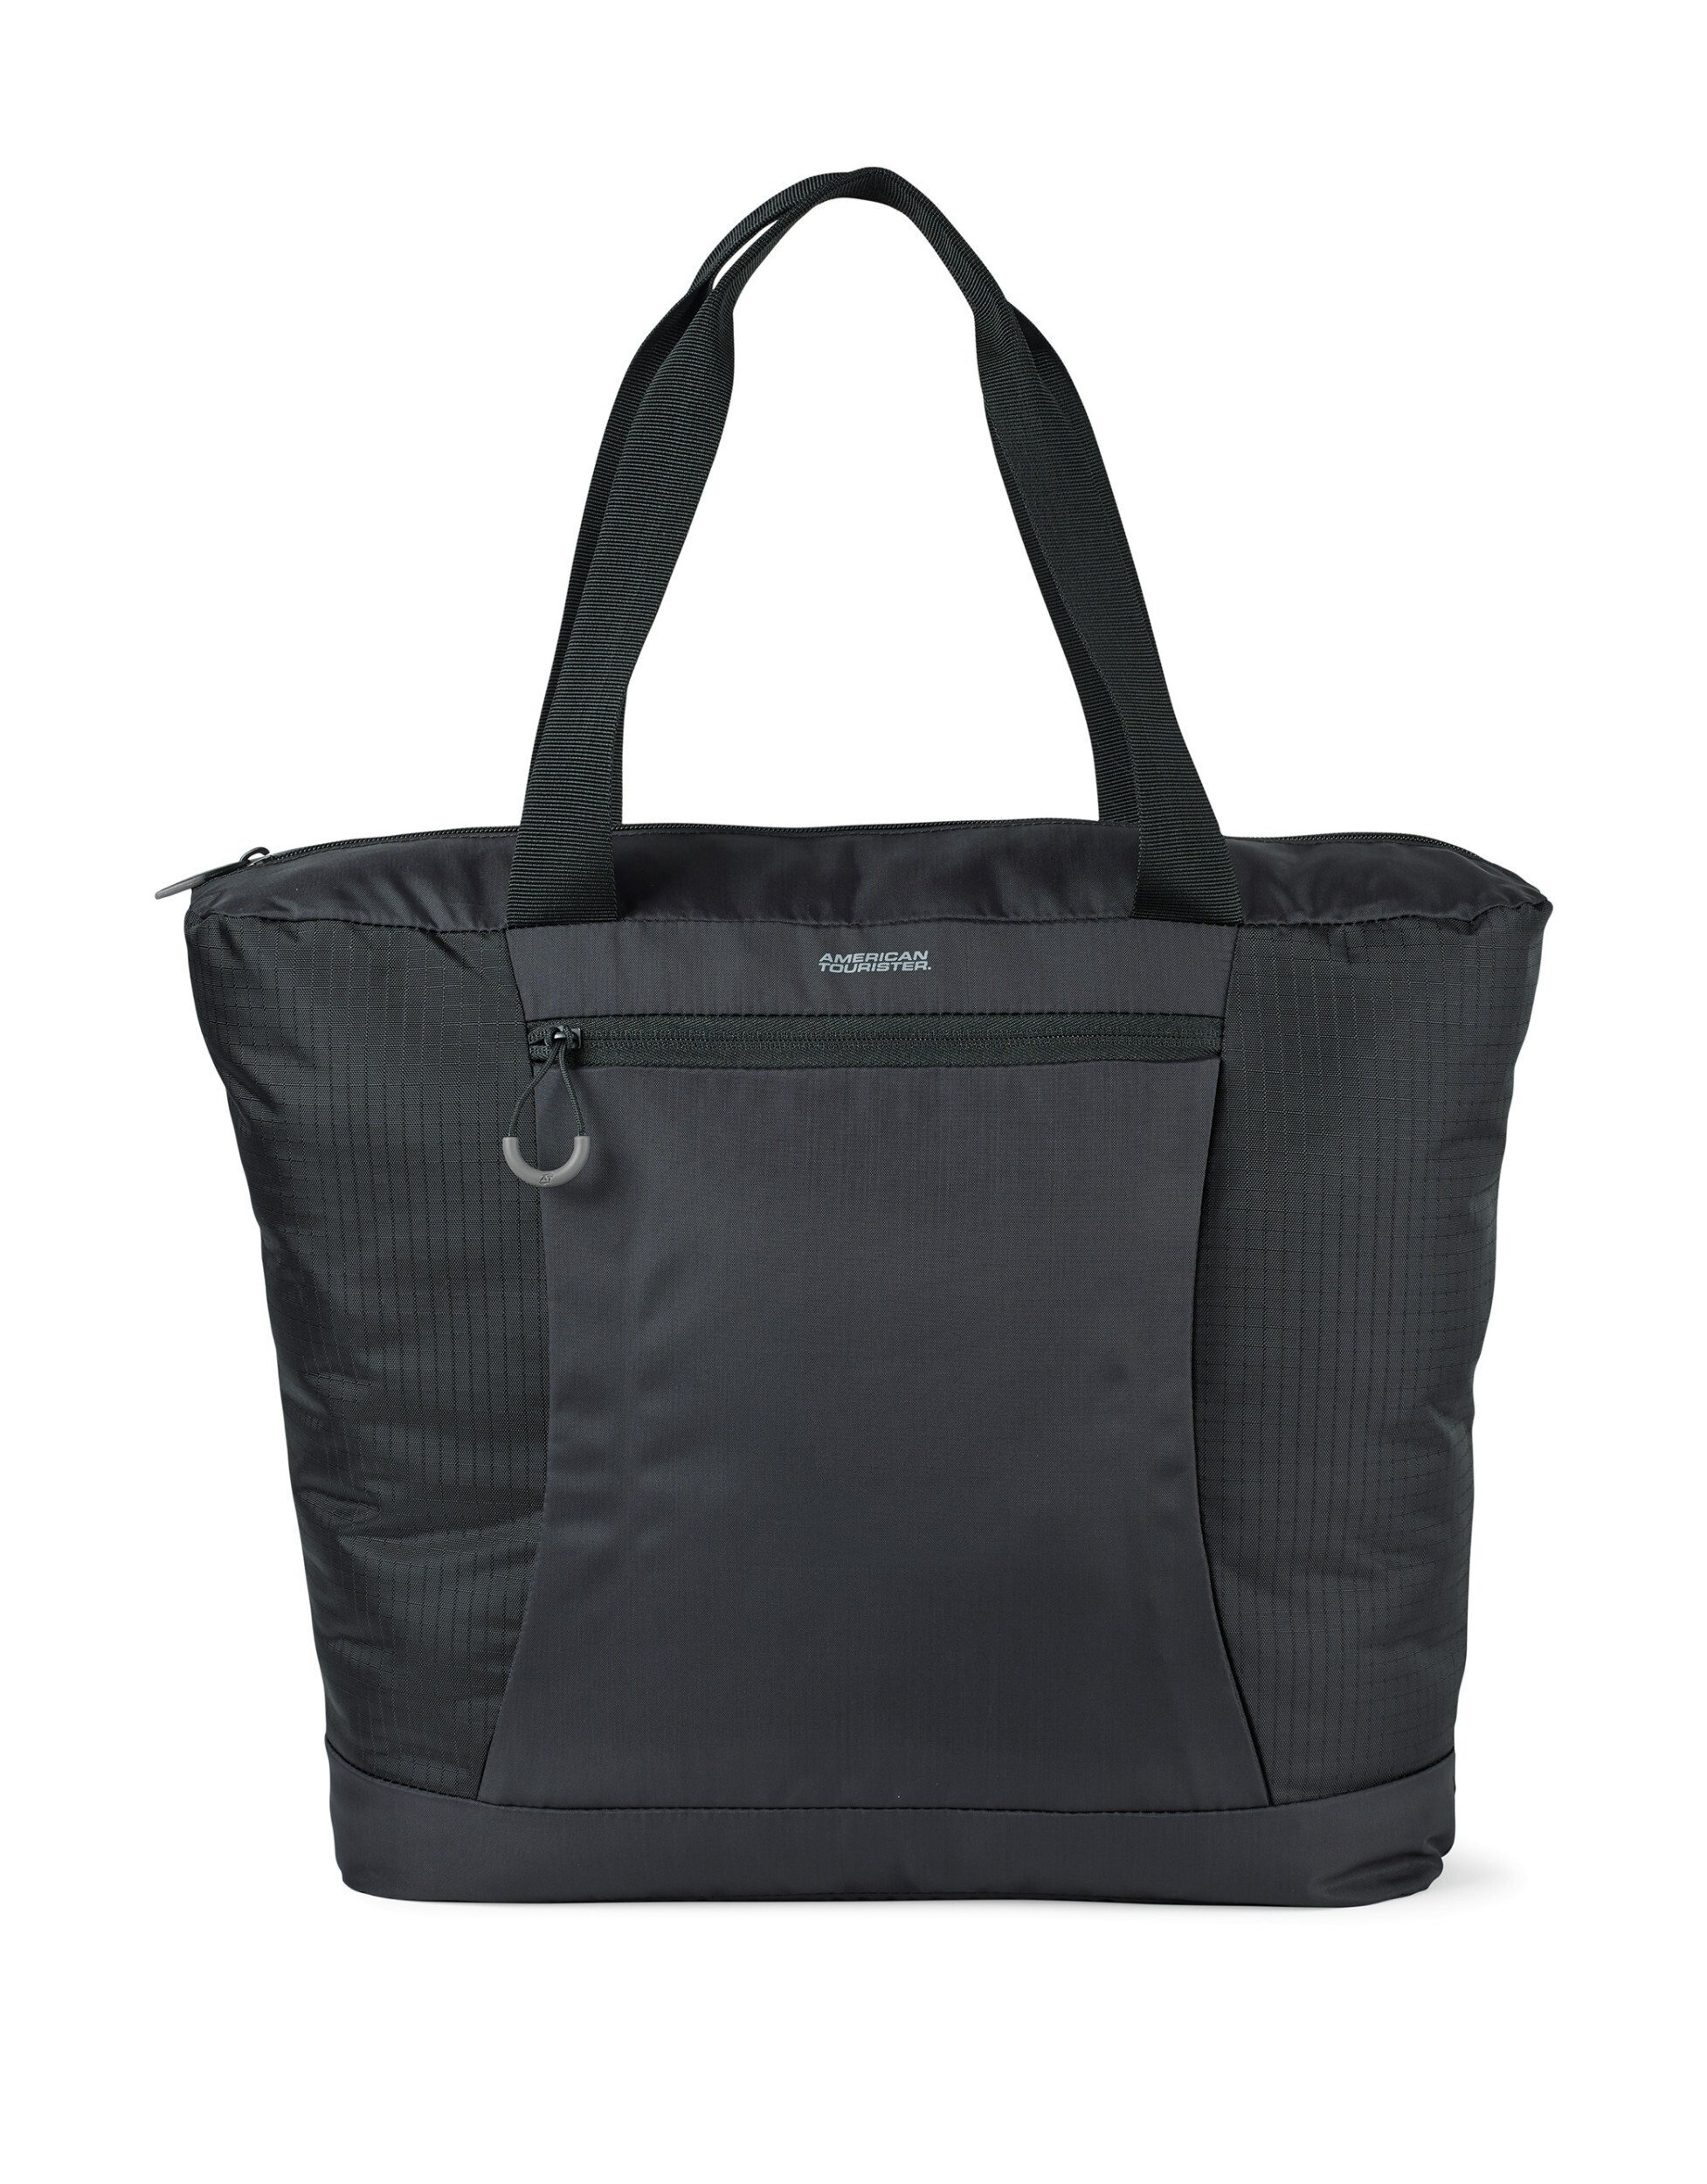 American Tourister Voyager 420D Packable Tote